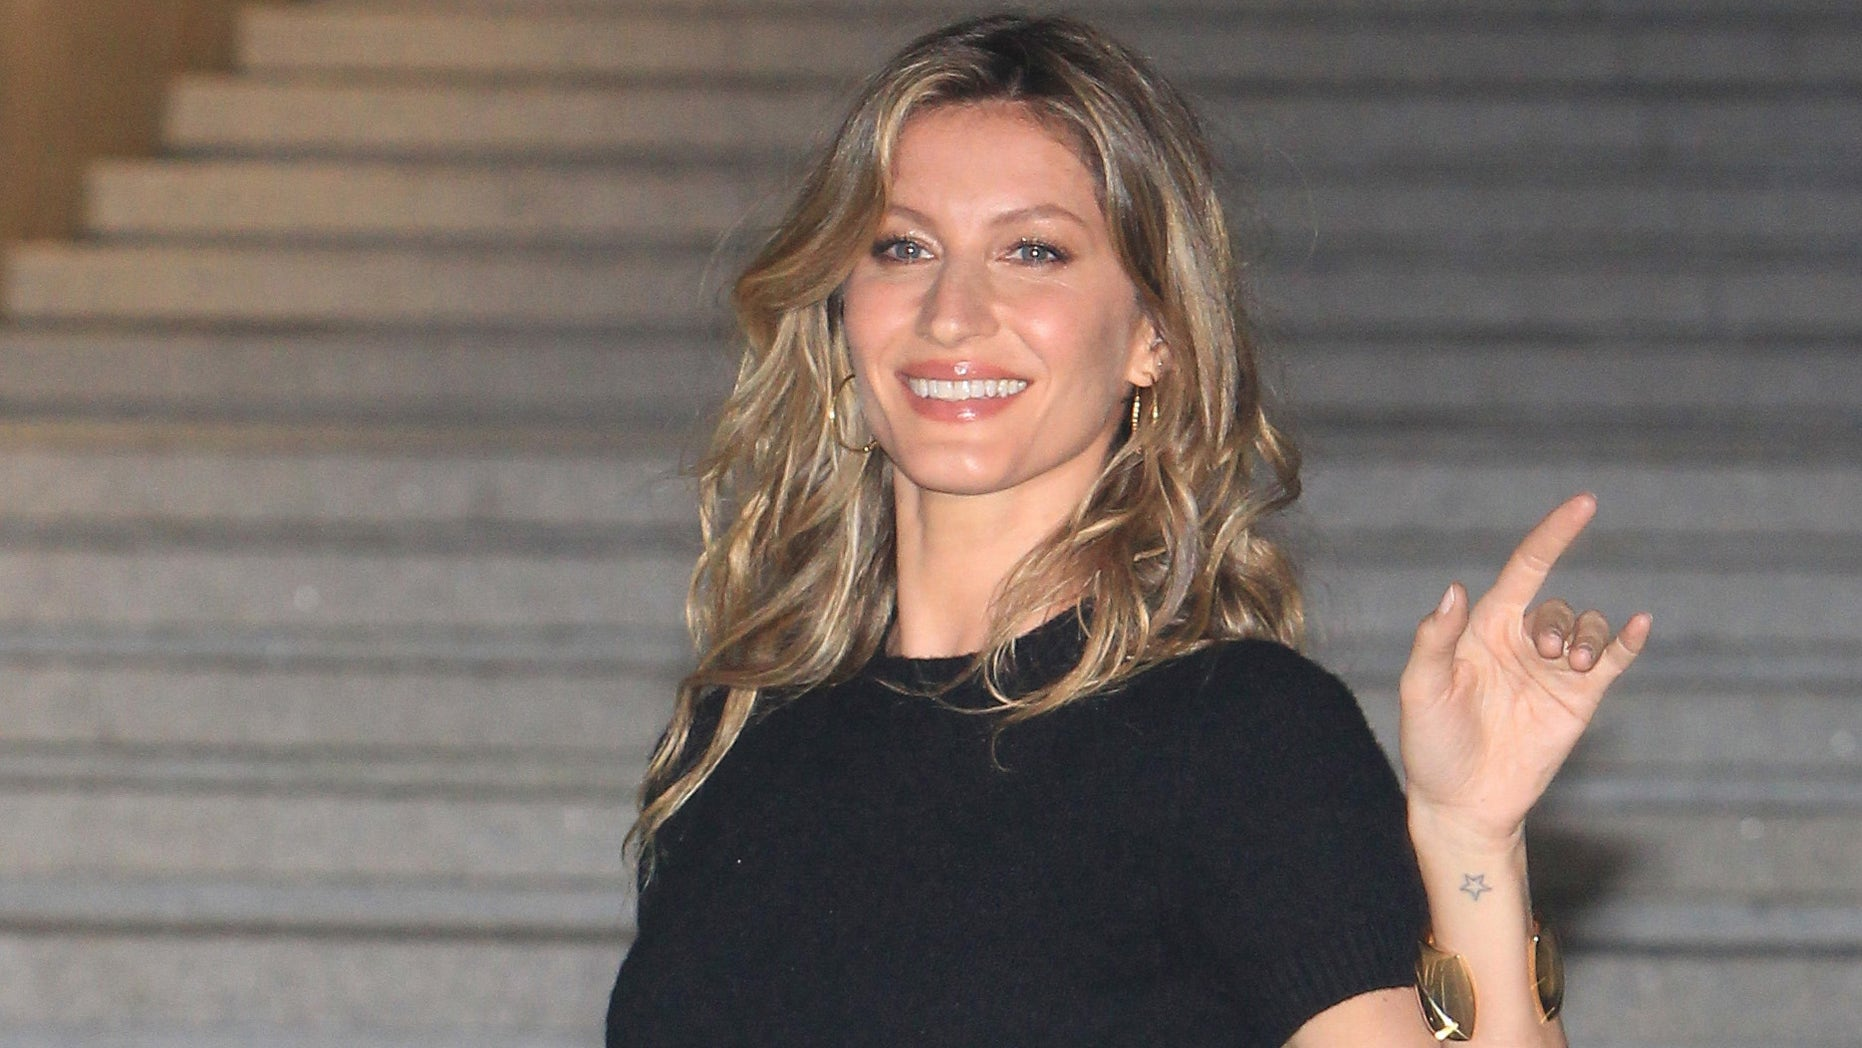 Gisele Bundchen on May 4, 2015 in Seoul, South Korea.